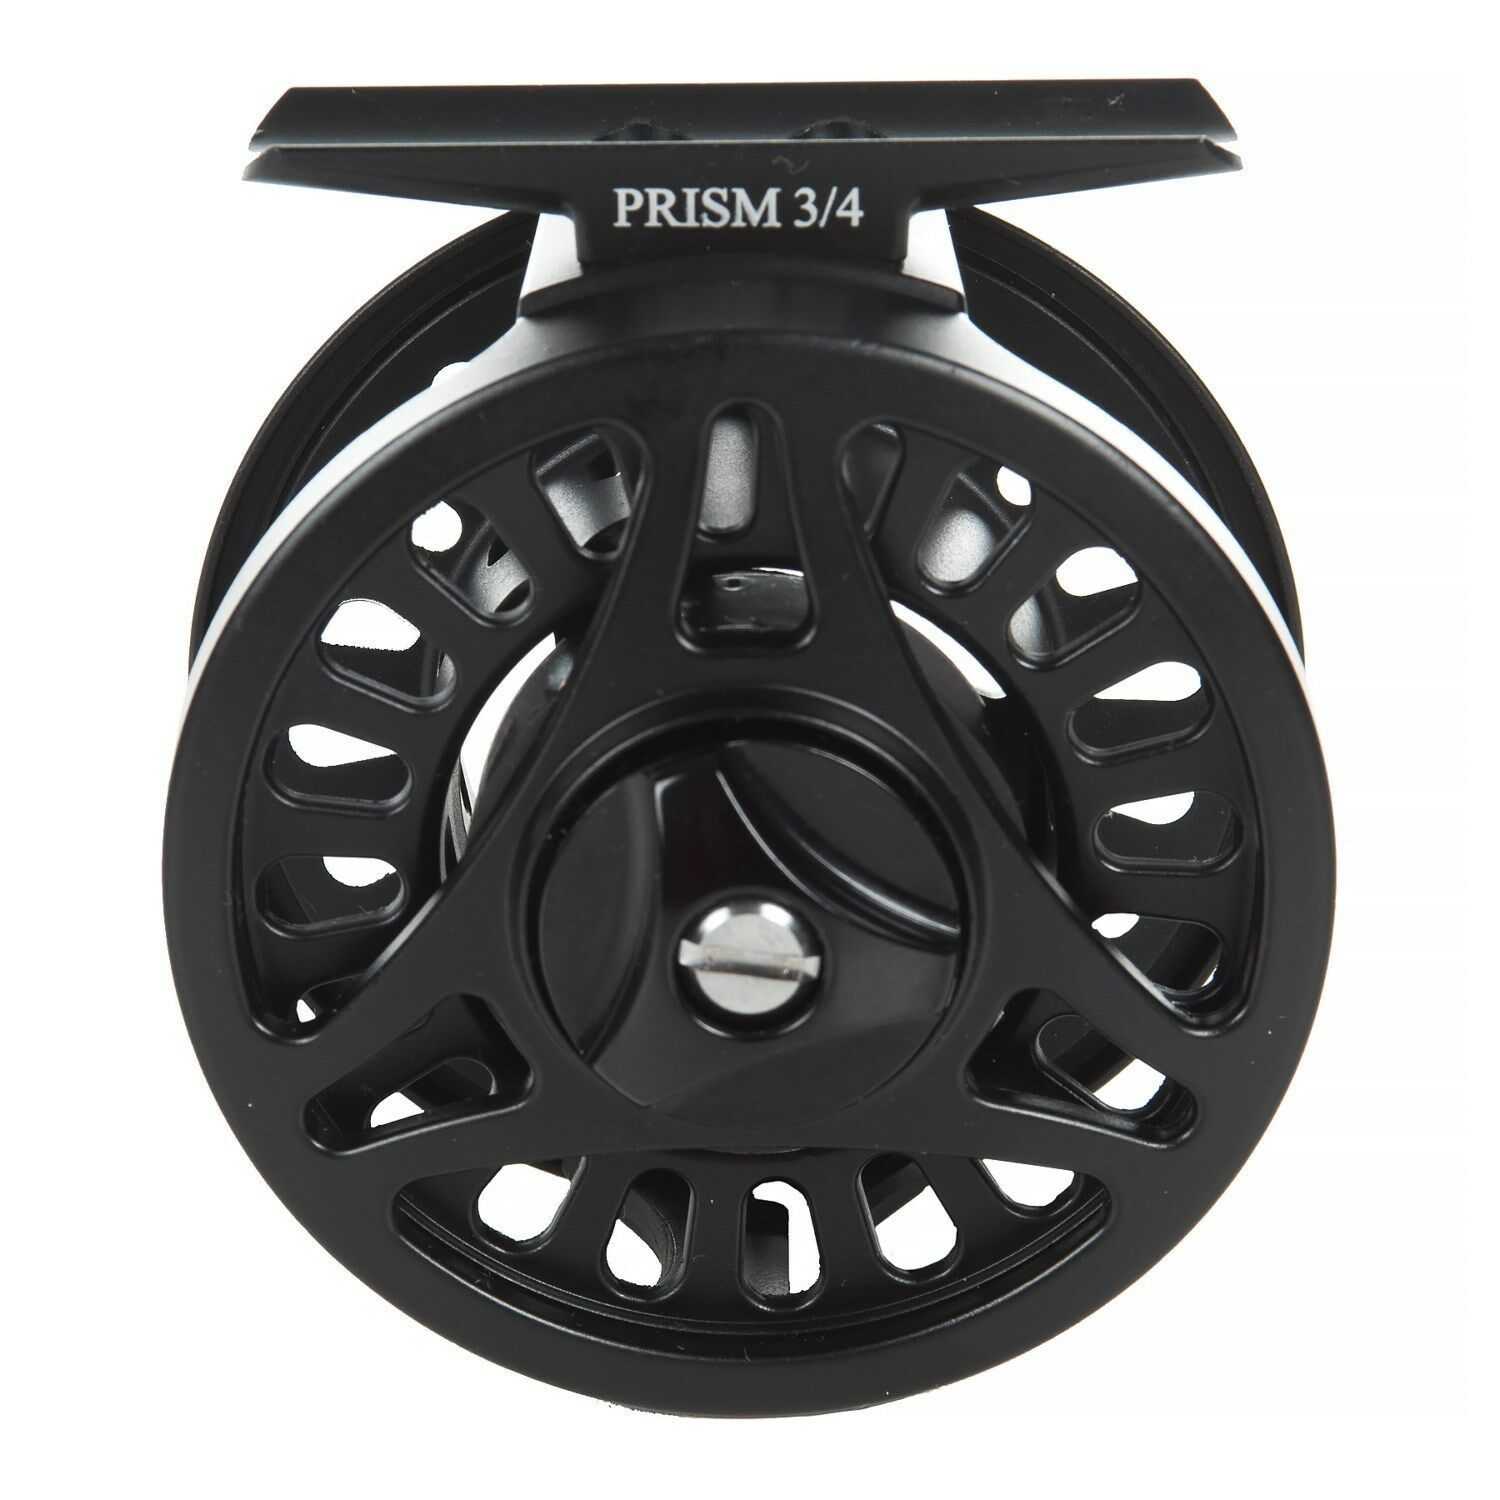 Temple Fork Outfitters Prism Large Reel Arbor Fly Reel Large Größe 3-4 w/ Spare Spool - NEW b75113